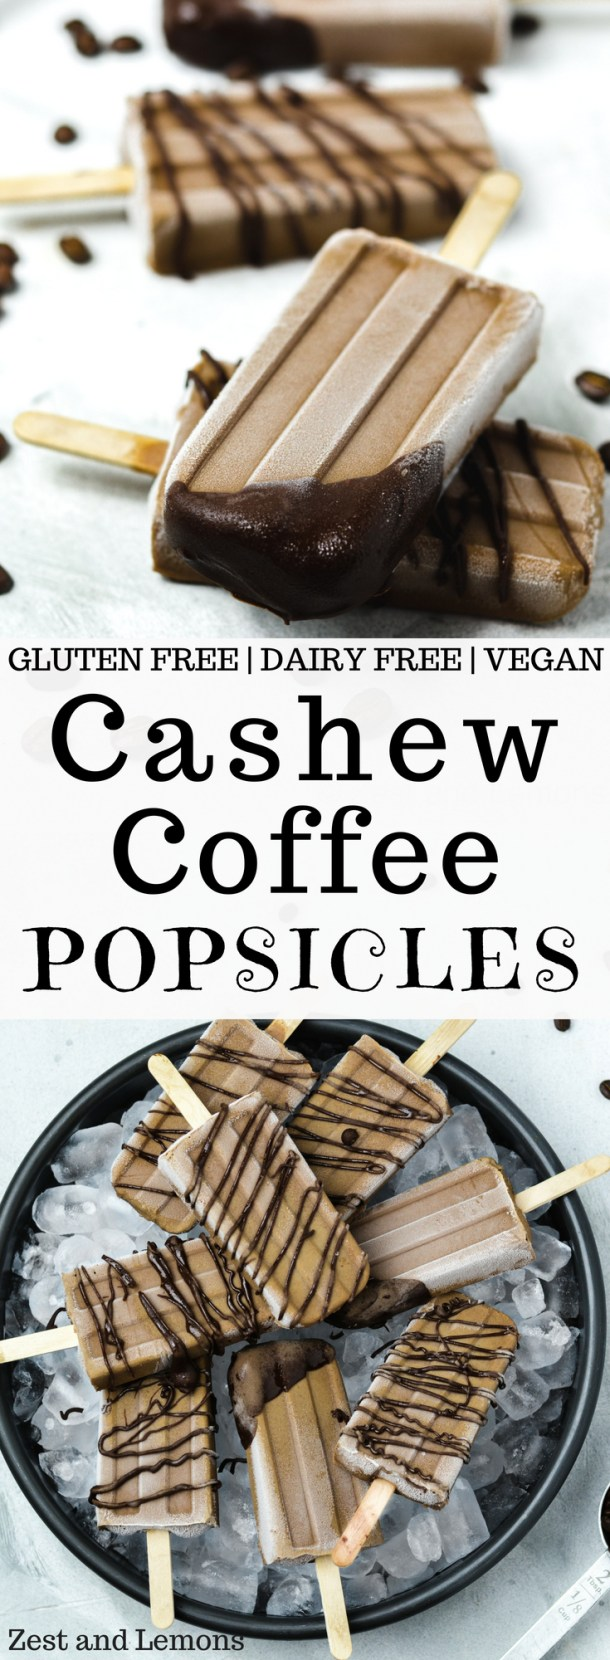 These cashew coffee popsicles taste like creamy coffee ice cream. Gluten free, dairy free, and vegan - Zest and Lemons #glutenfree #popsicles